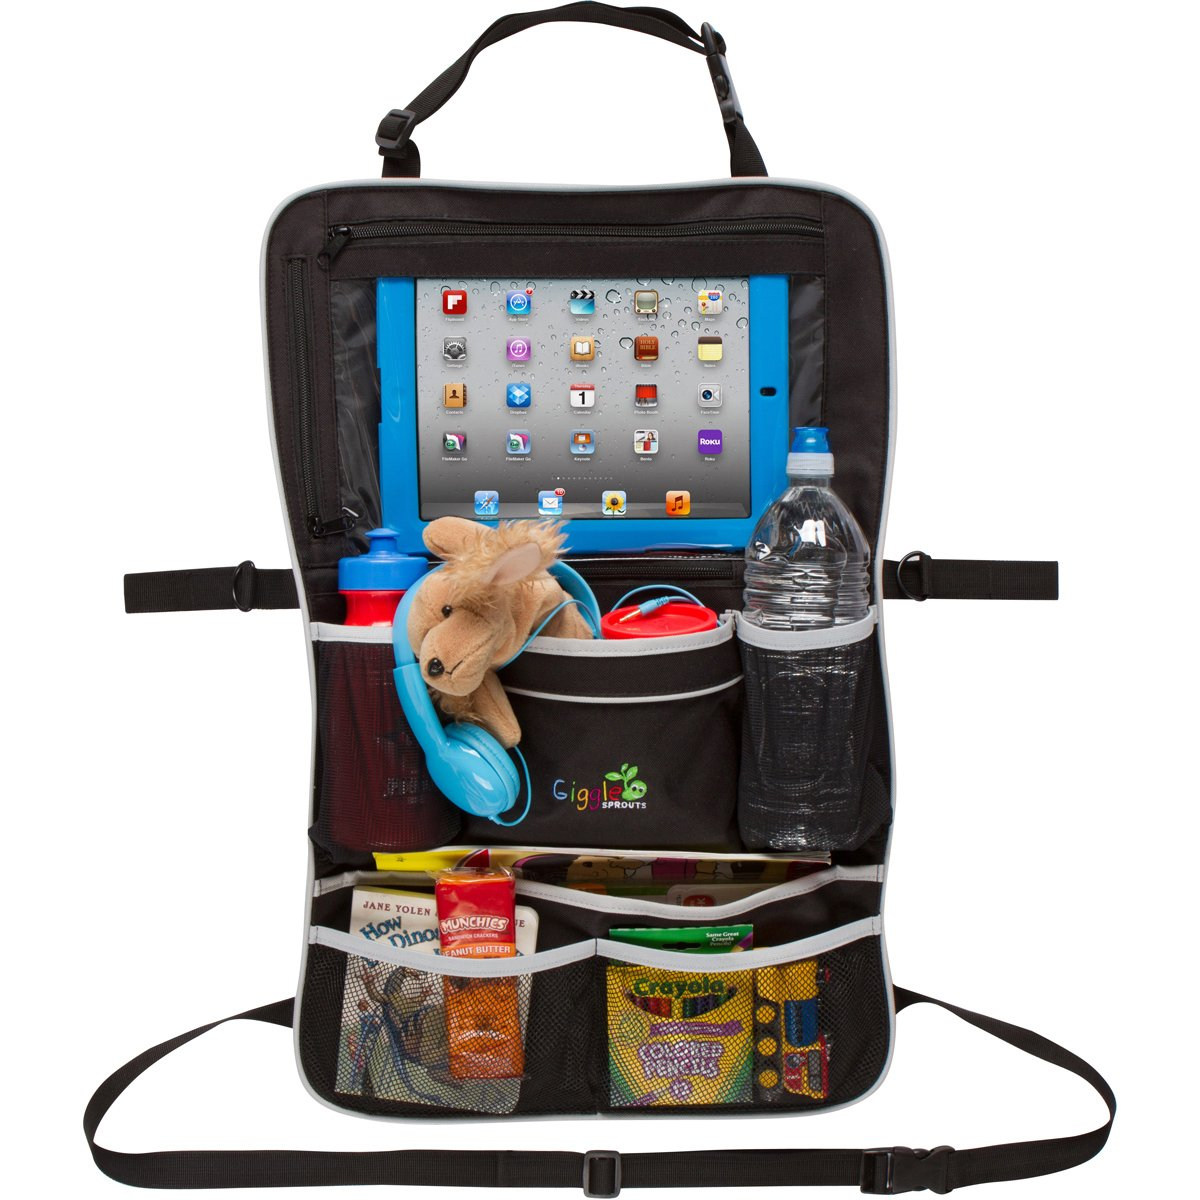 Giggle Sprouts Universal Backseat Car Organizer